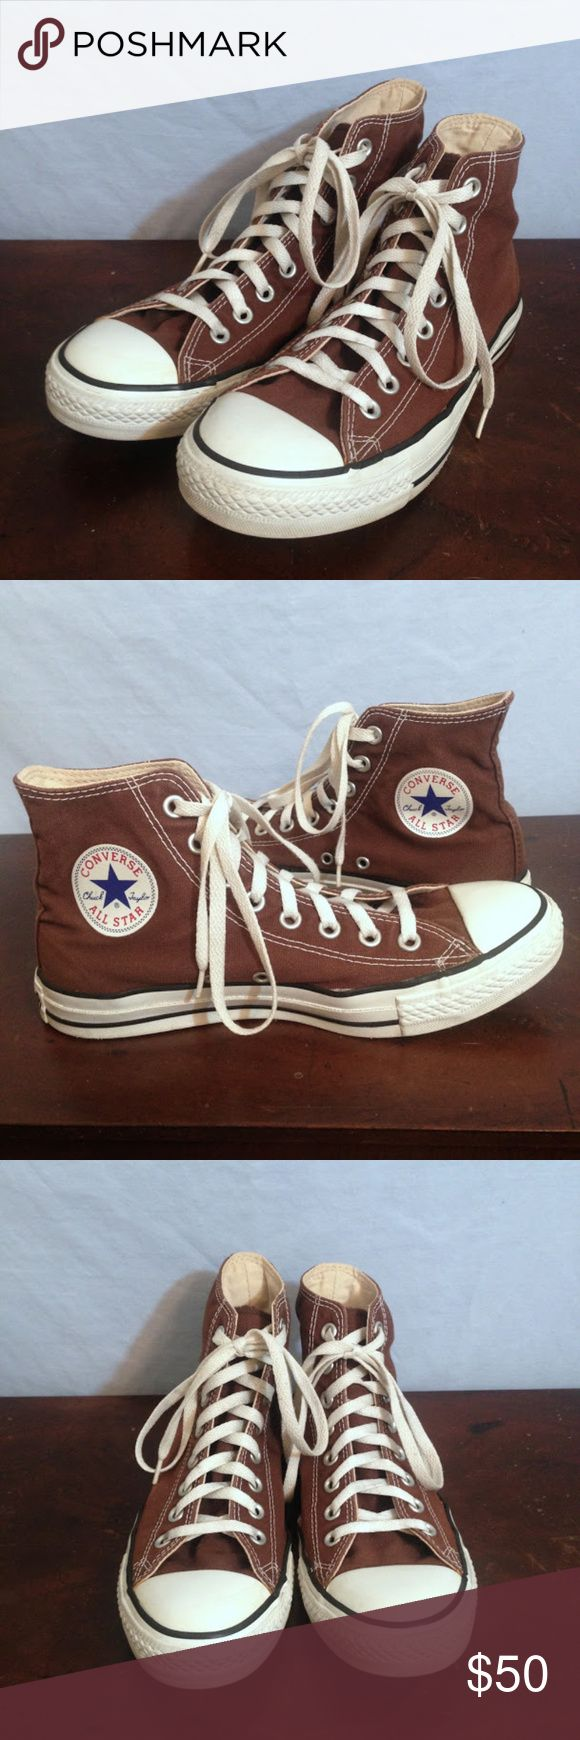 Saddle Brown Converse All-Star High-Top Sneakers Saddle Brown Converse Canvas All-Star High-Top Sneakers. The classic Converse canvas high-top sneaker in a rich chocolate brown. Slight color fading/discoloration on the outside of the right shoe. Minor wear on the tread, but generally in really great condition. Size Men's 7 (Women's 9). Converse Shoes Sneakers